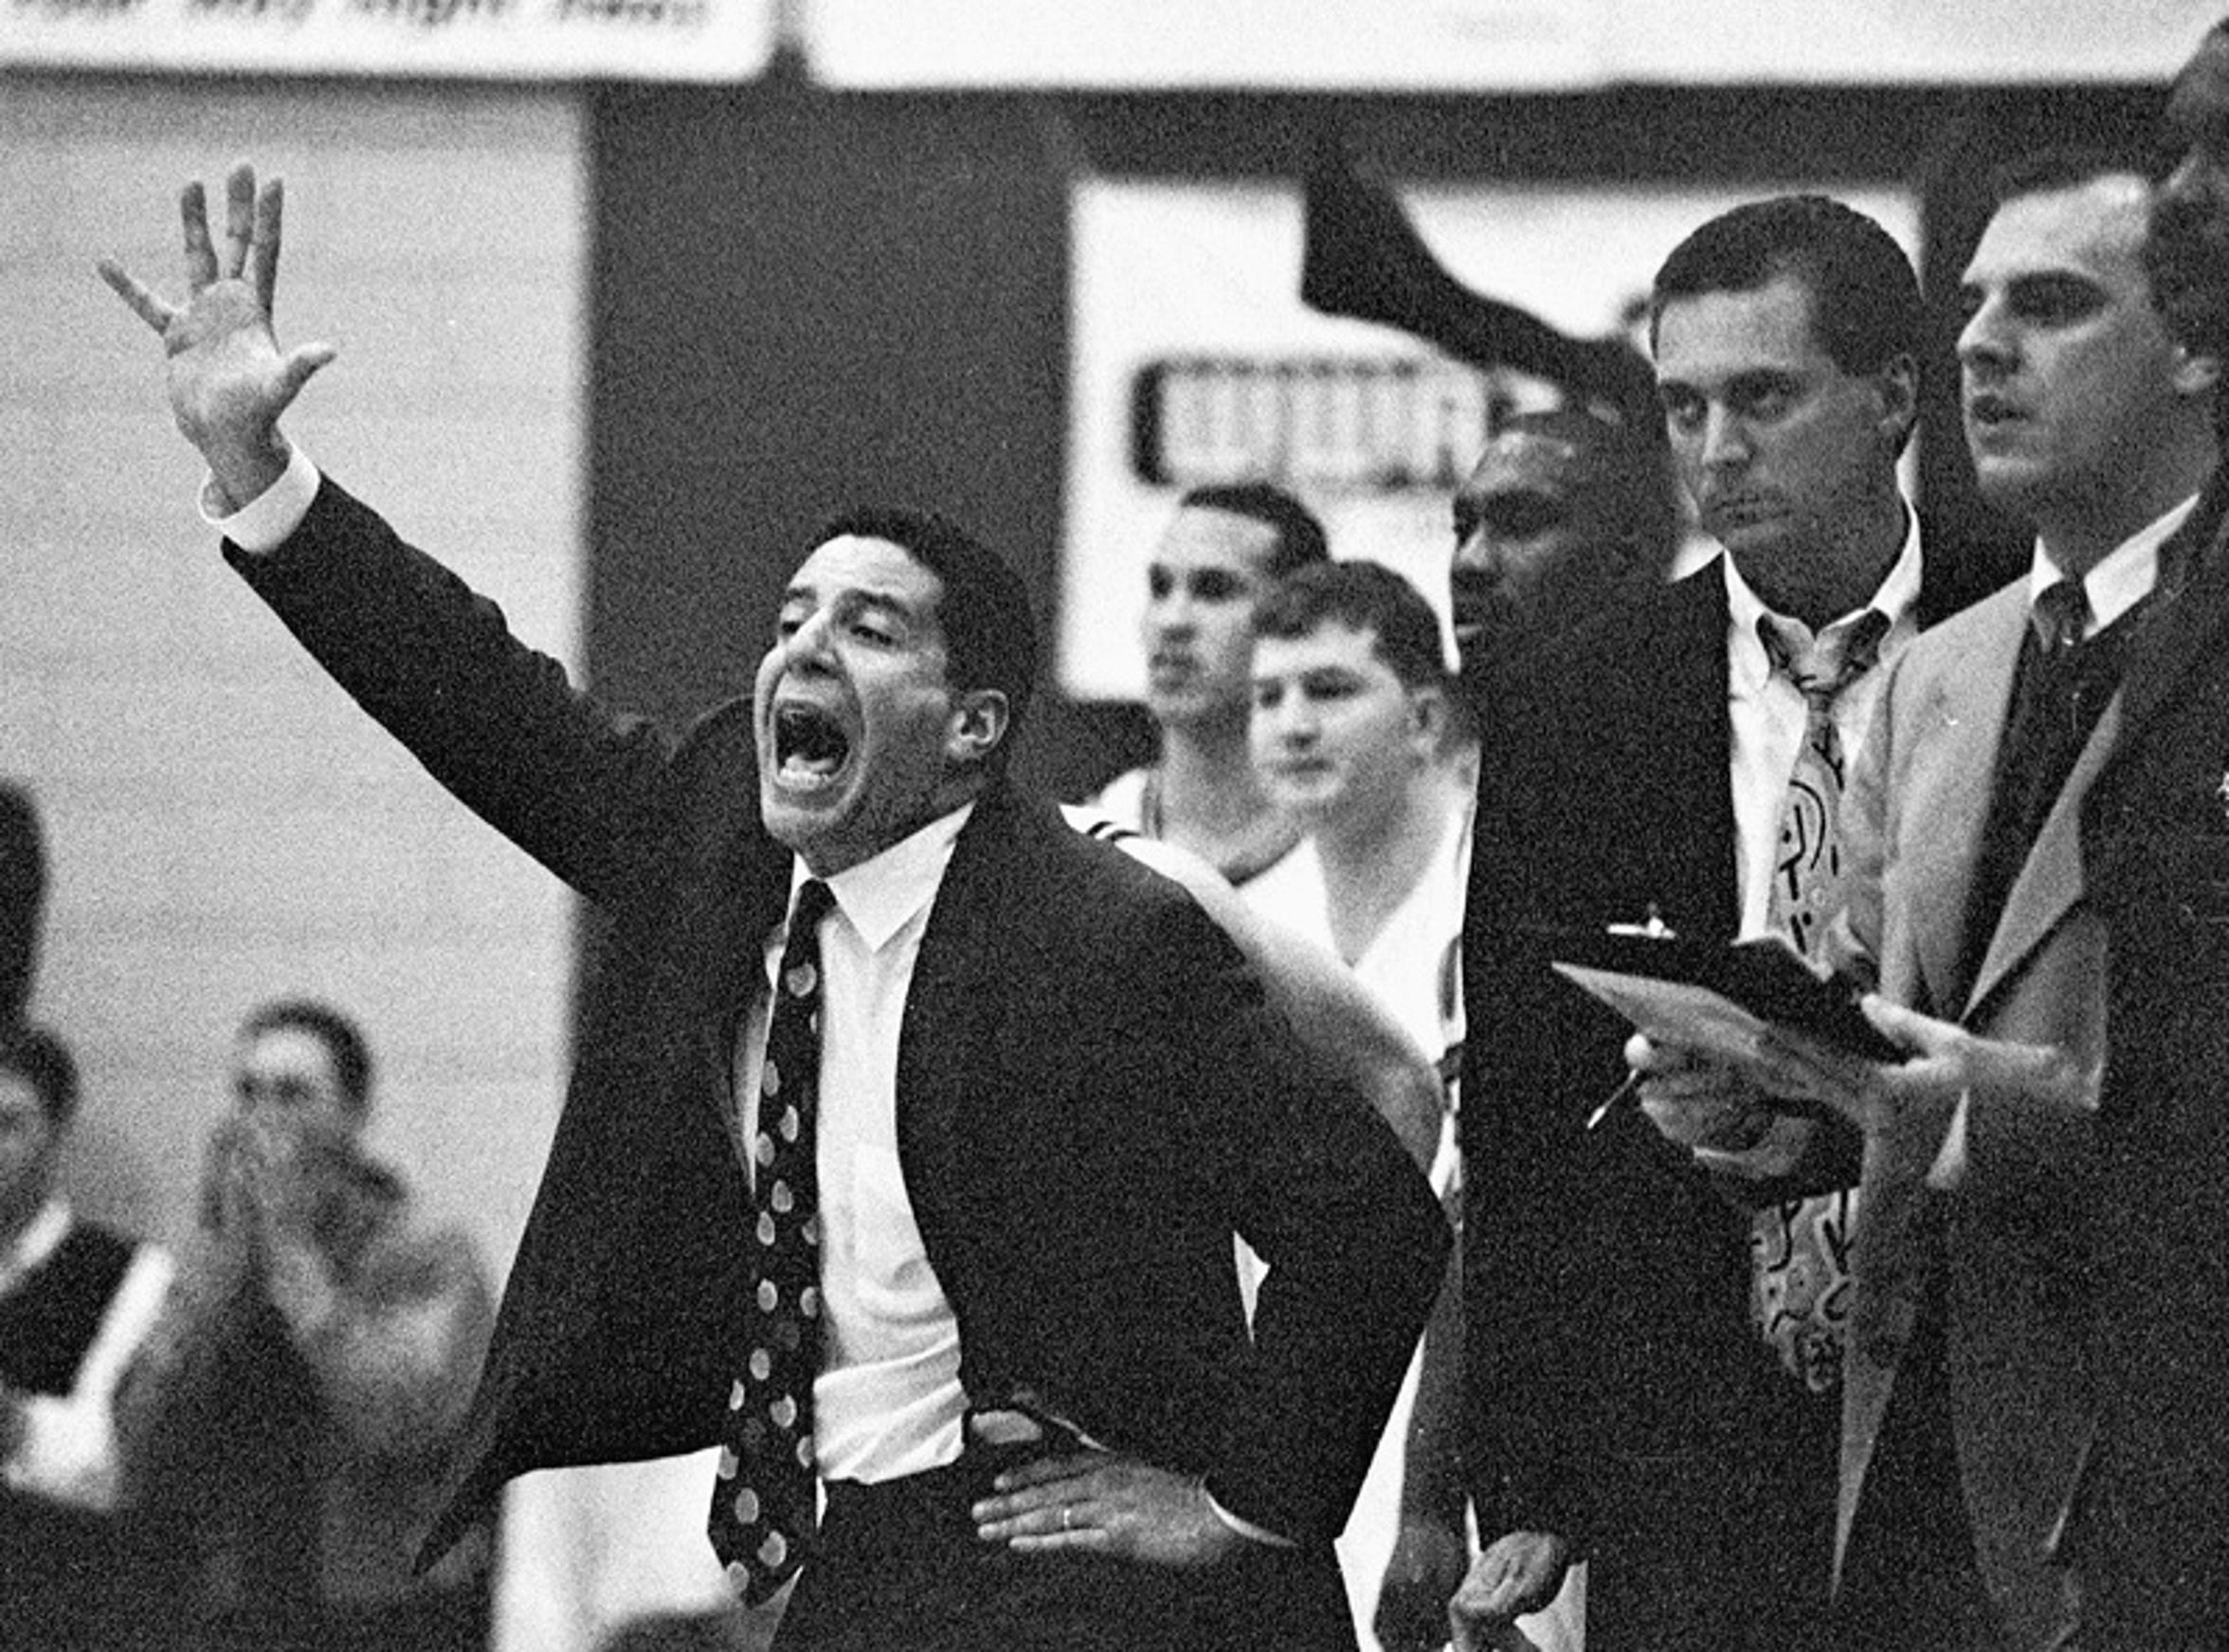 Former USI coach Bruce Pearl, with then-assistant coach Rick Herdes to his left. Herdes would take over coaching USI when Pearl left for Wisconsin-Milwaukee.